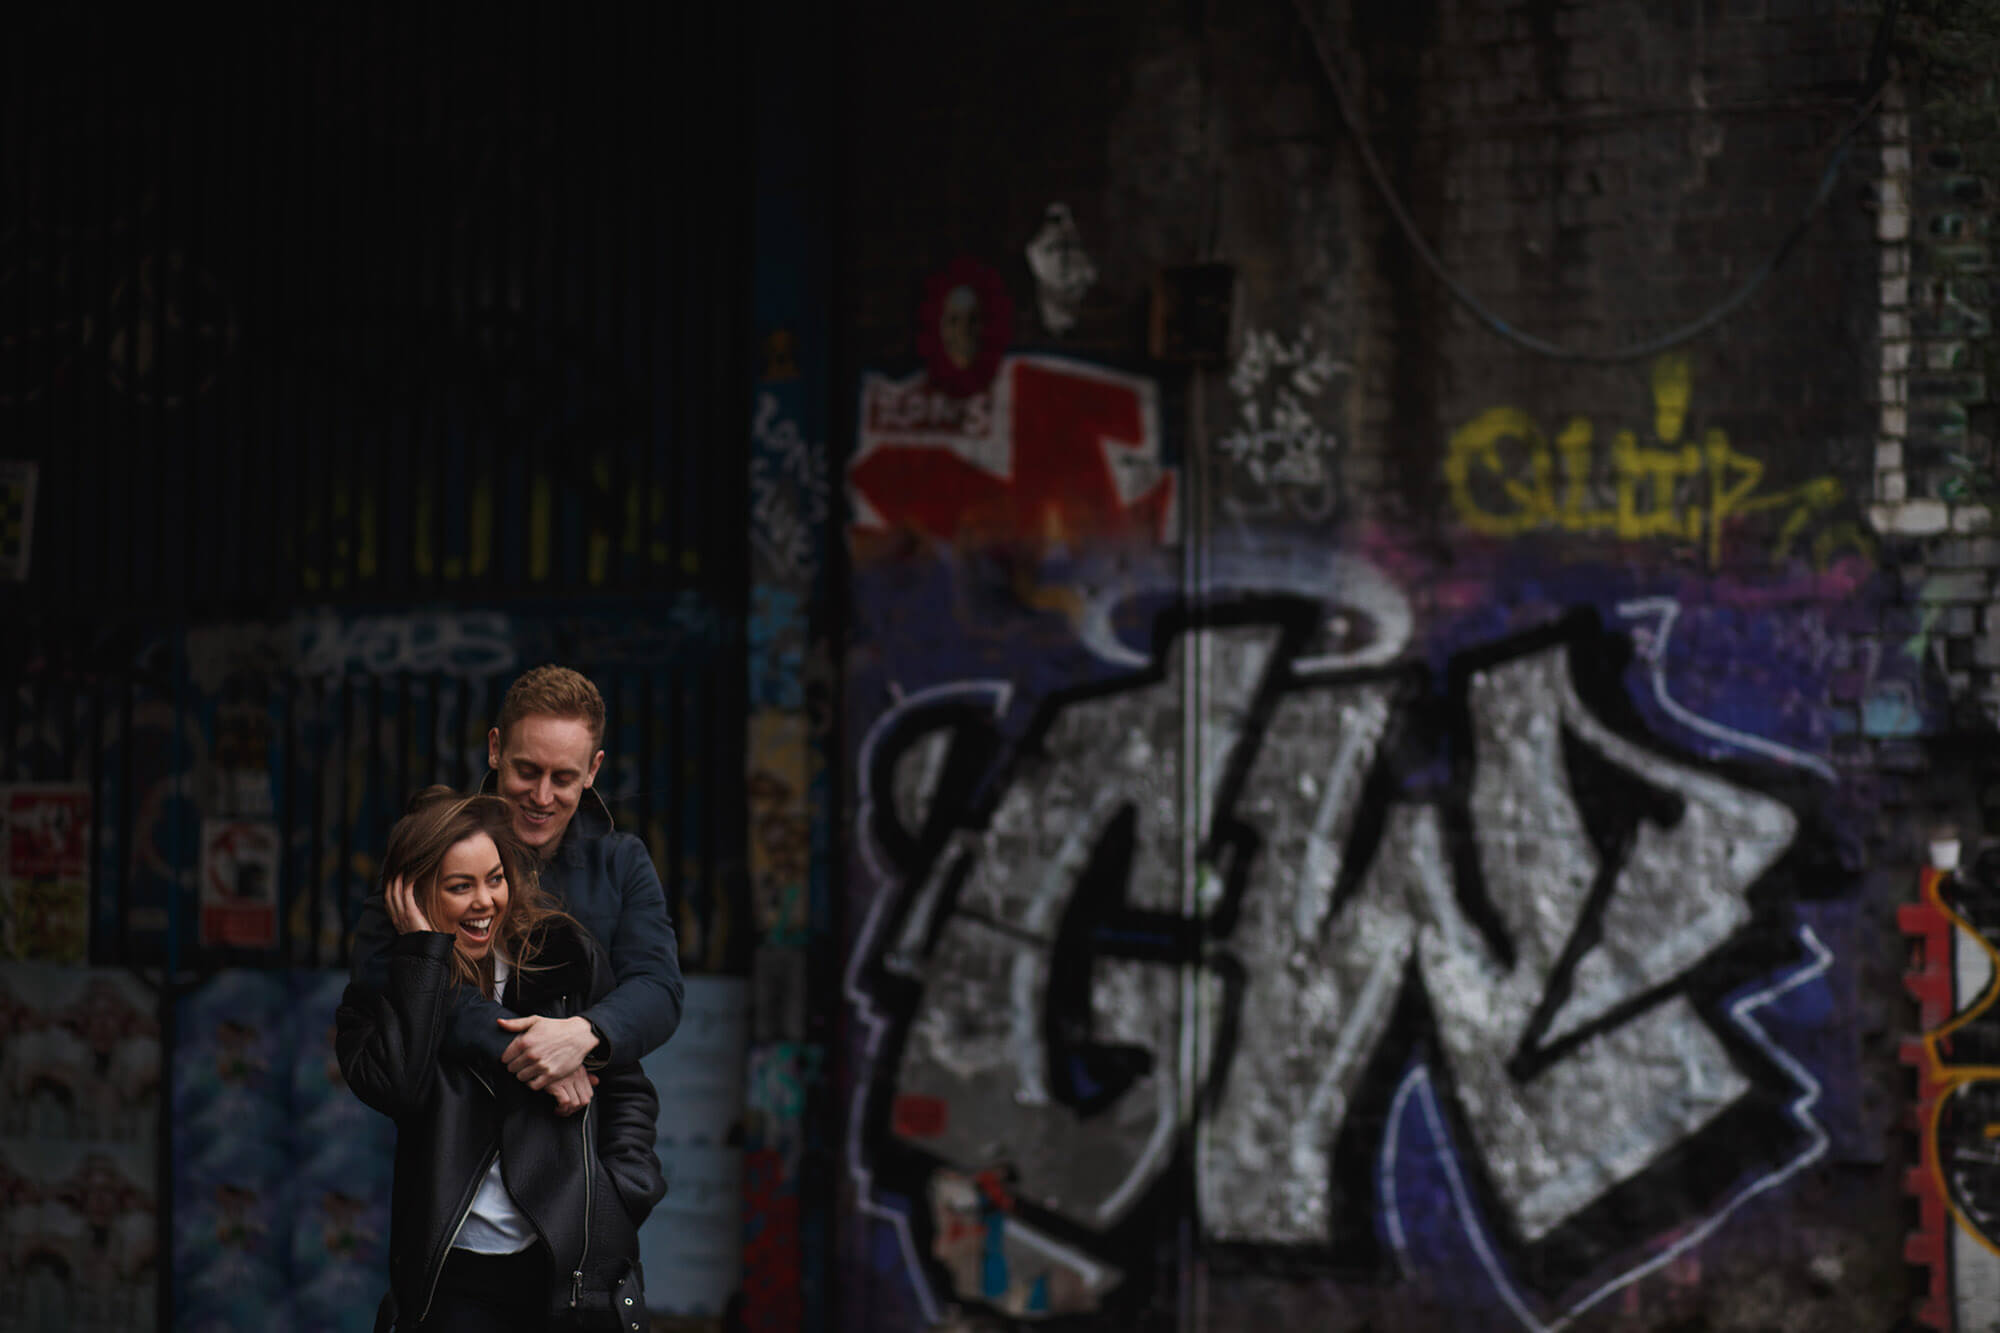 grafitti and couple